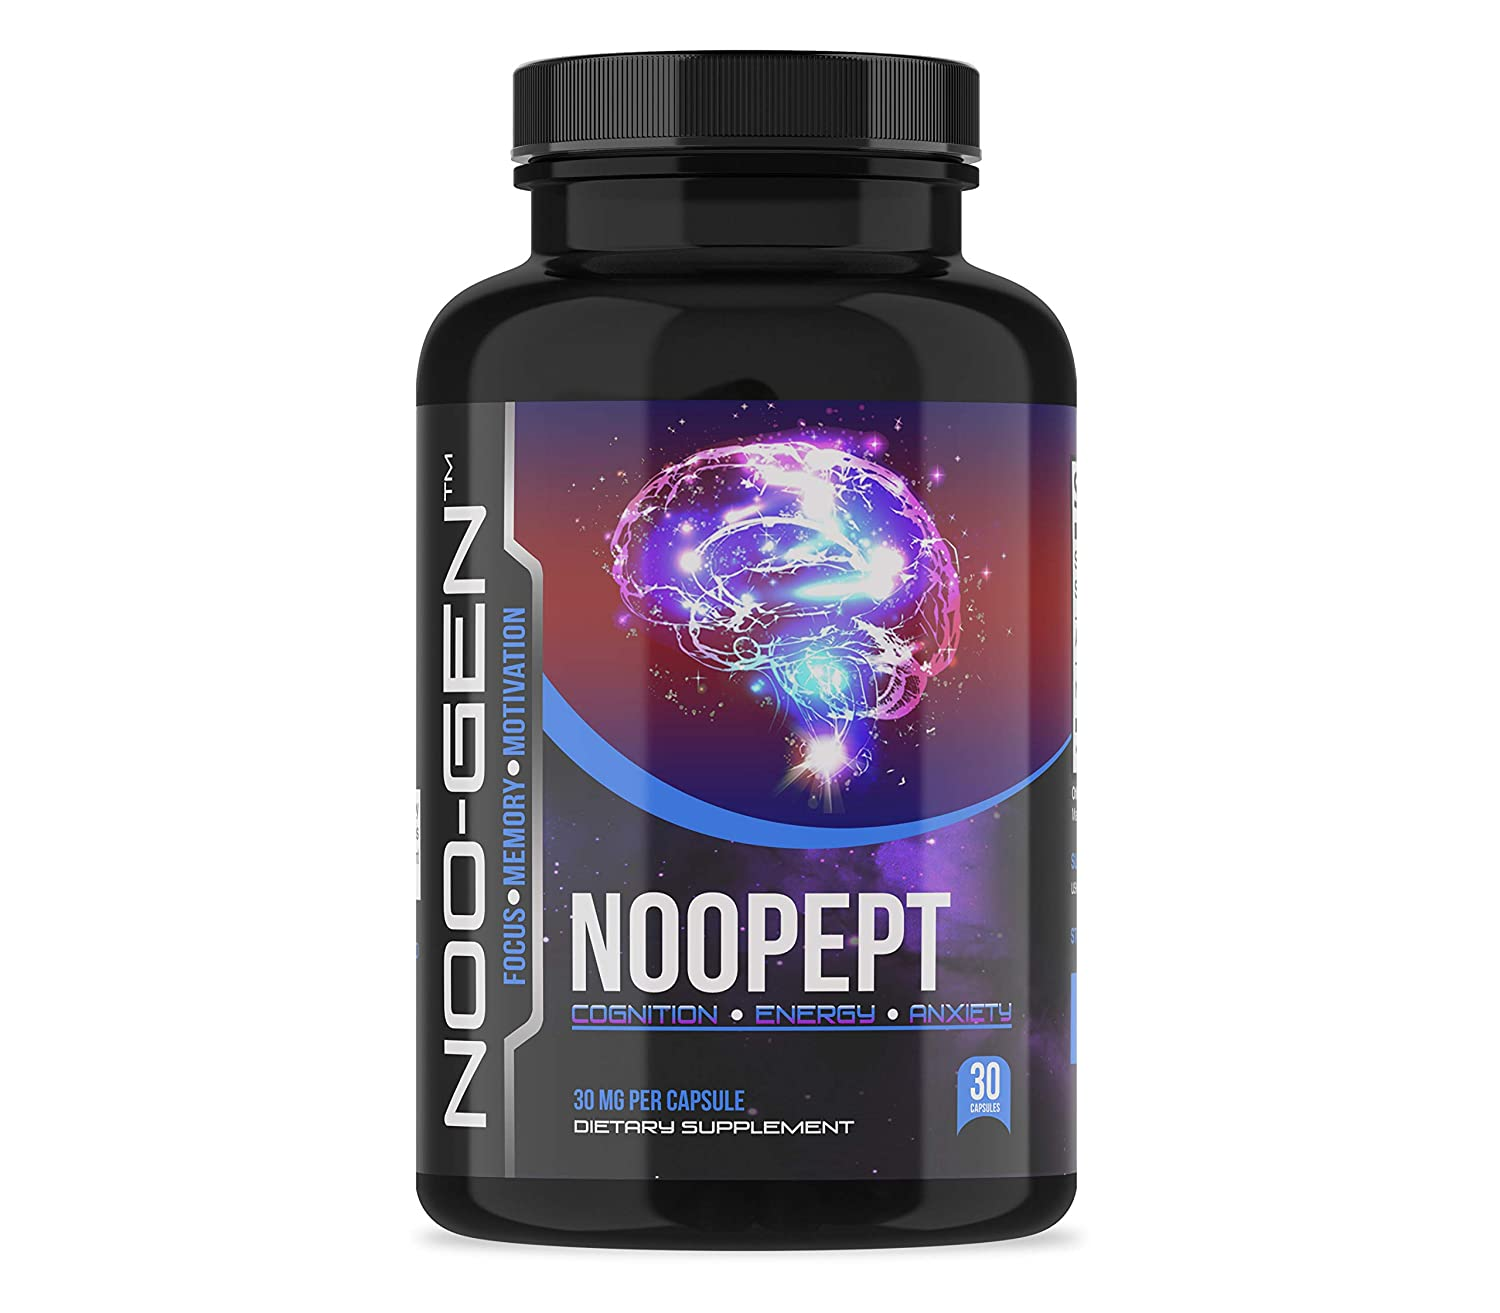 Amazon.com: NOOPEPT Supplement, Pharmaceutical Grade, Made in USA (30 Capsules 30mg): Health & Personal Care